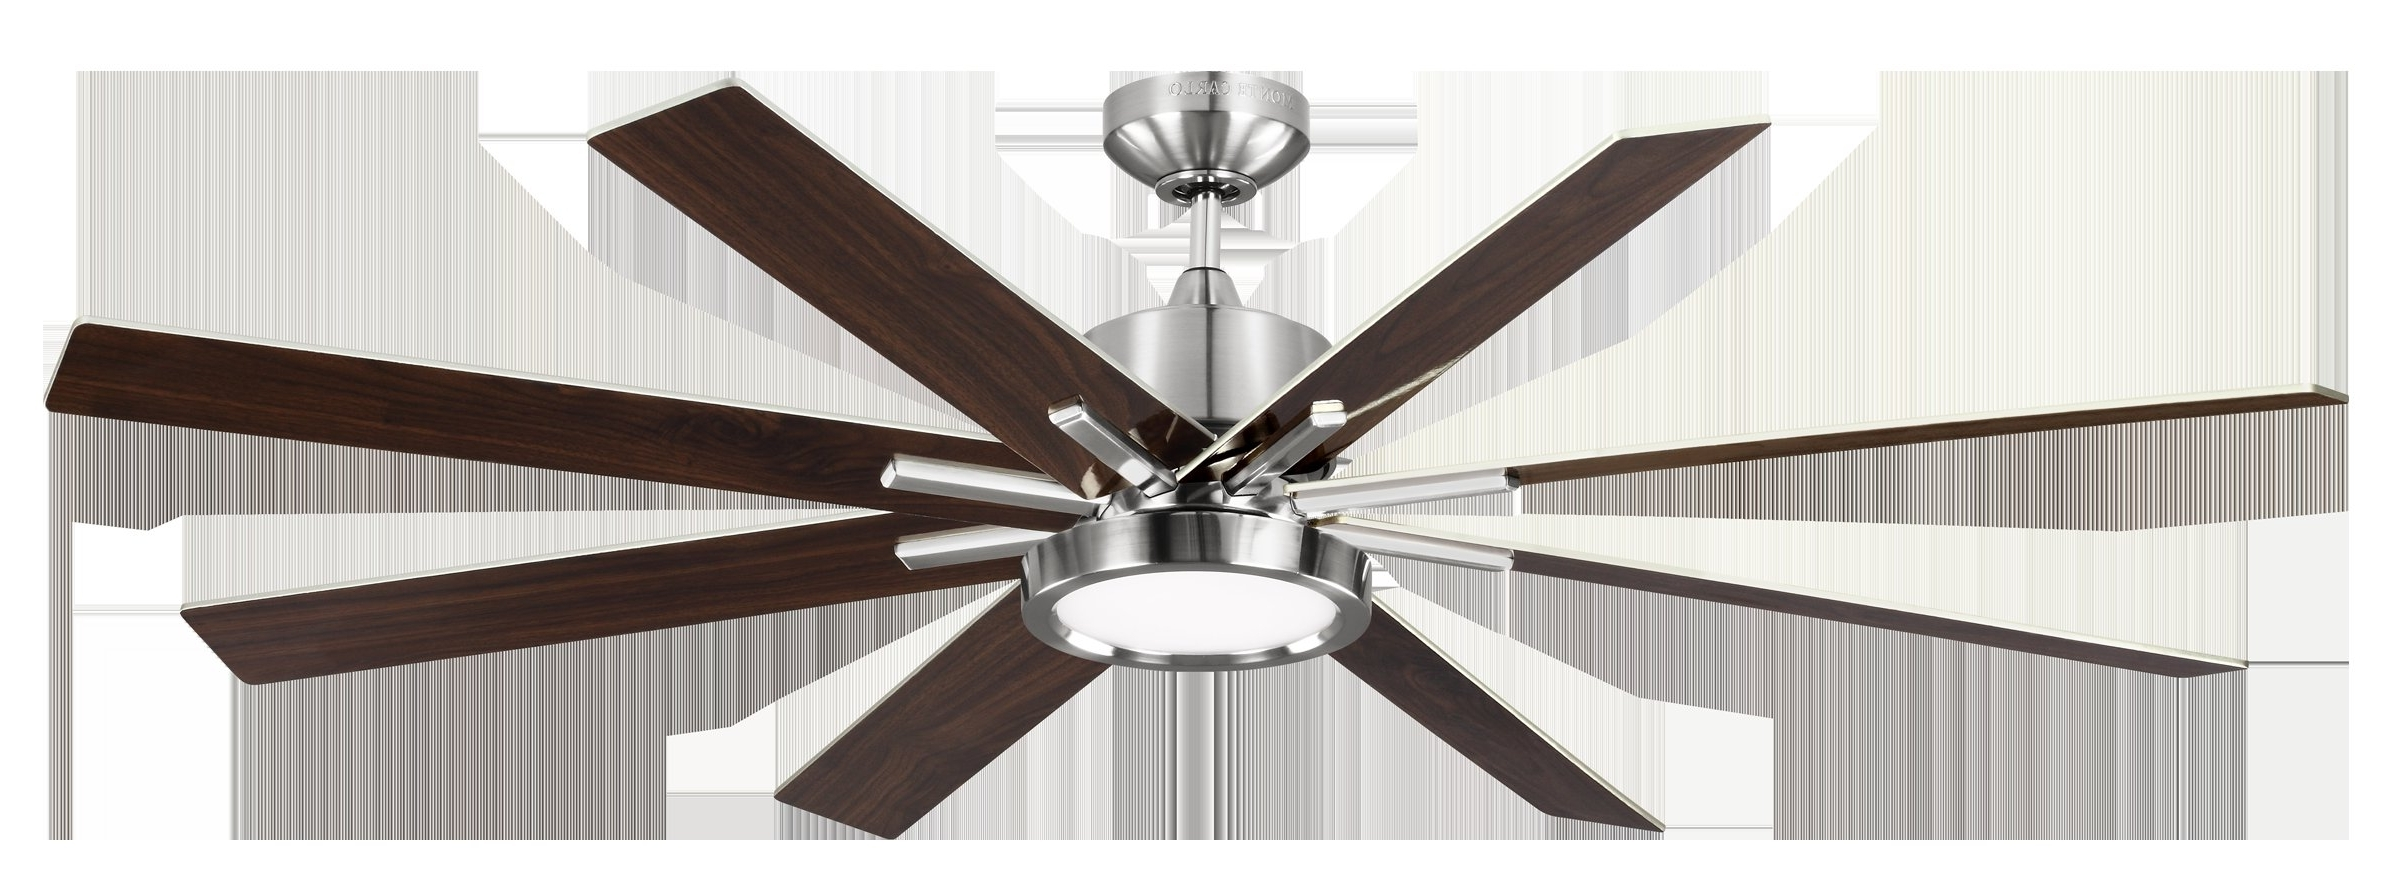 "Favorite Outdoor Ceiling Fans With Remote In Wade Logan 60"" Woodlynne 8 Blade Outdoor Ceiling Fan With Remote (View 4 of 20)"